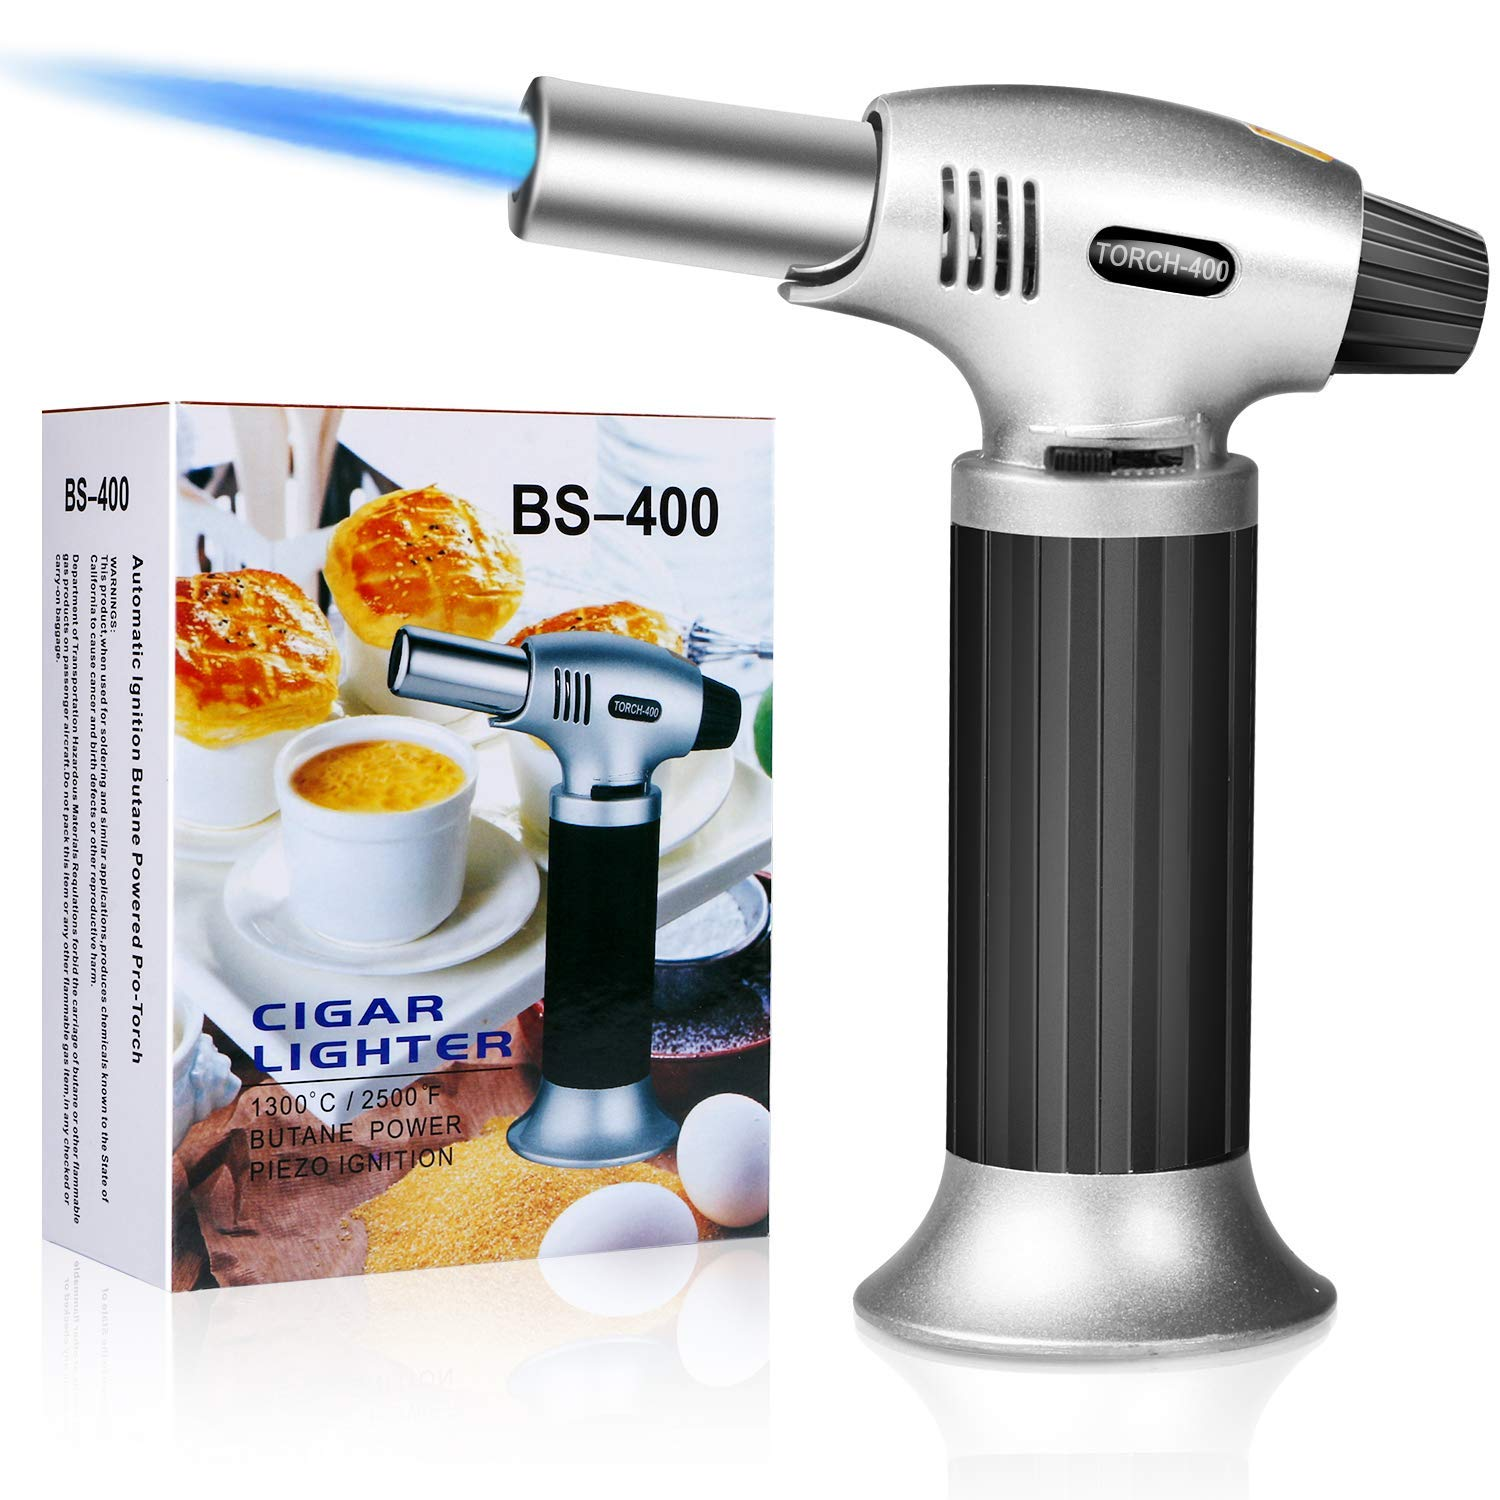 Candles Baking Grill Stove Gifort Kitchen Torch BBQ Refillable Blow Torch Lighter Outdoor Windproof Cooking Torch  for Creme Brulee Flame Lighter Cooking